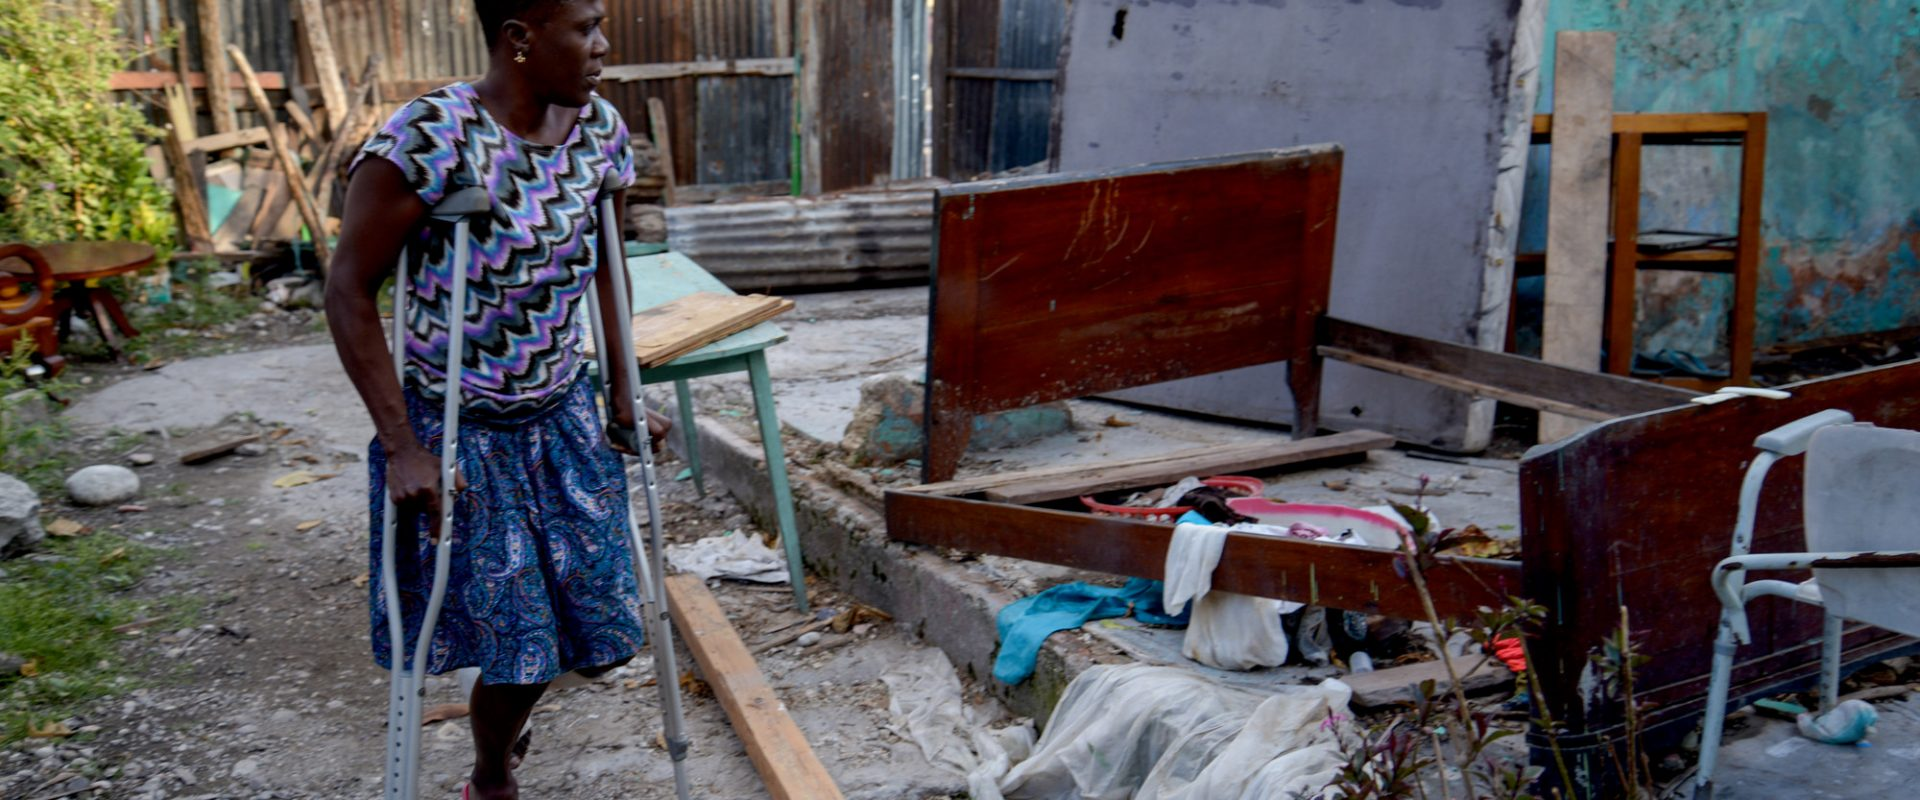 Hurricane Matthew - Haiti - October 2016. Communications visit December 2016  .Marie Ange at her damaged house in Les Cayes, Haiti  .Read full story in CBM Media Database.